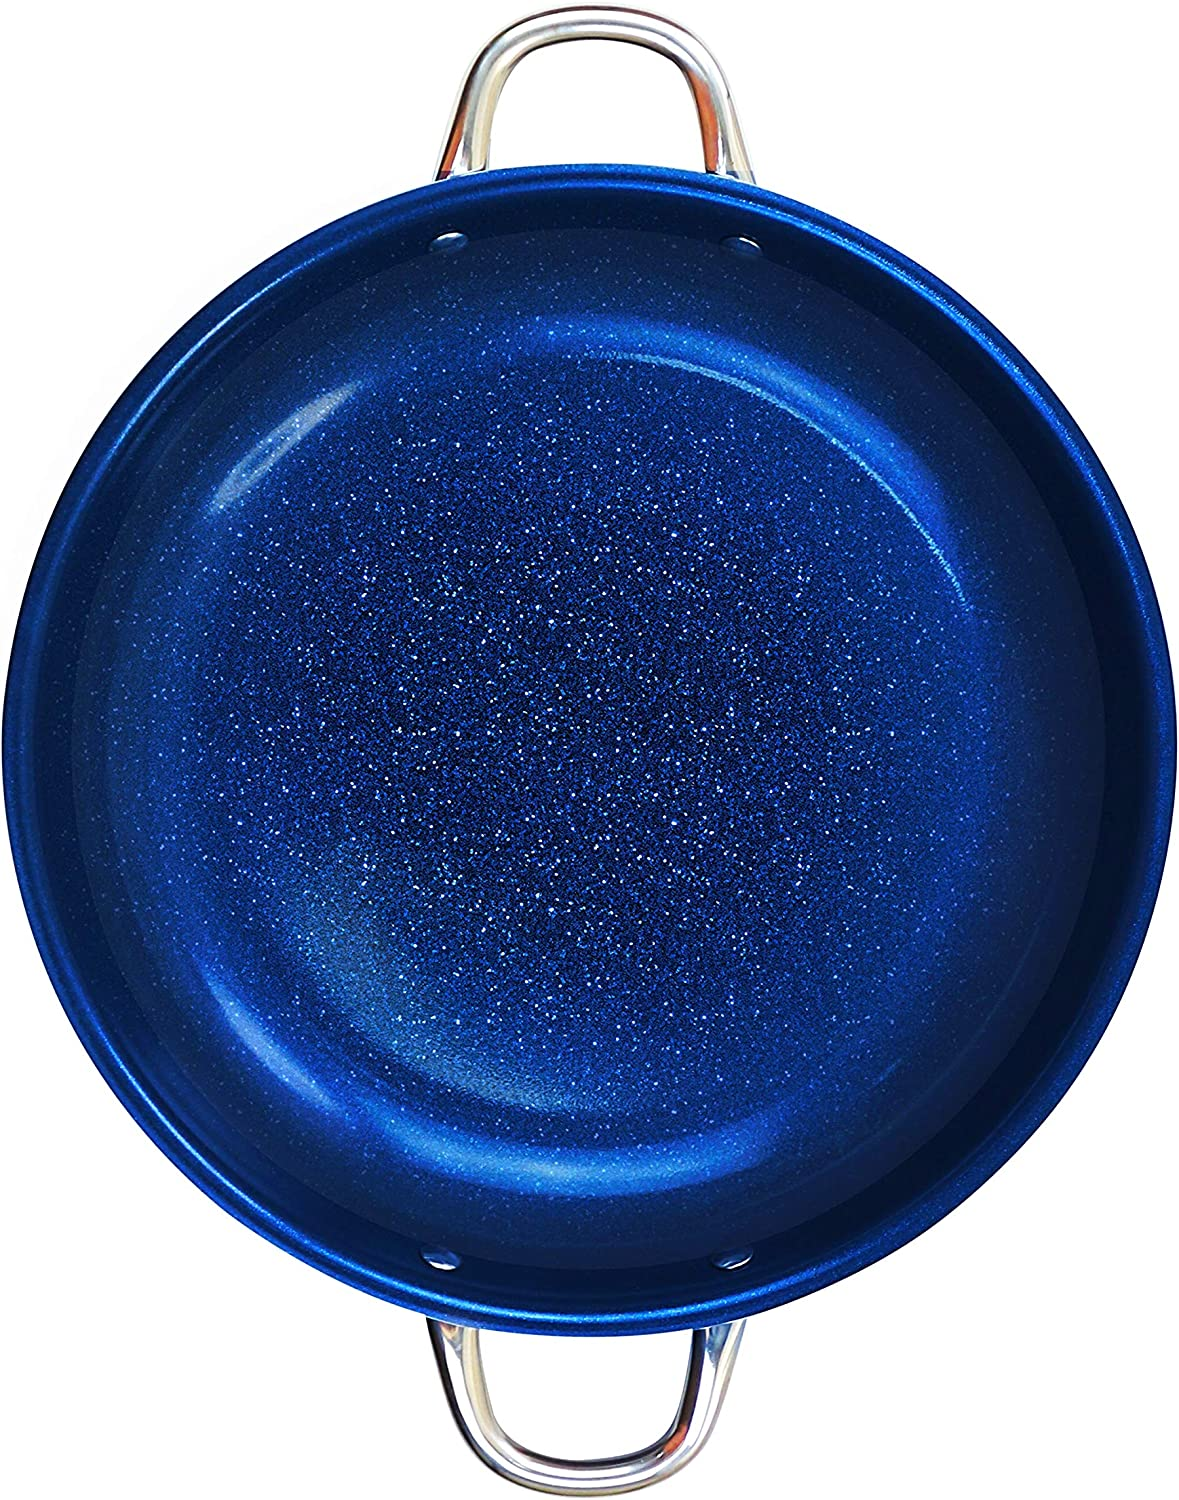 Blue Sapphire Frying Pan,14-Inch Non Stick Induction Base Oven Safe, Dish Washer Safe, Scratch Proof Round Handles For Comfort Grip